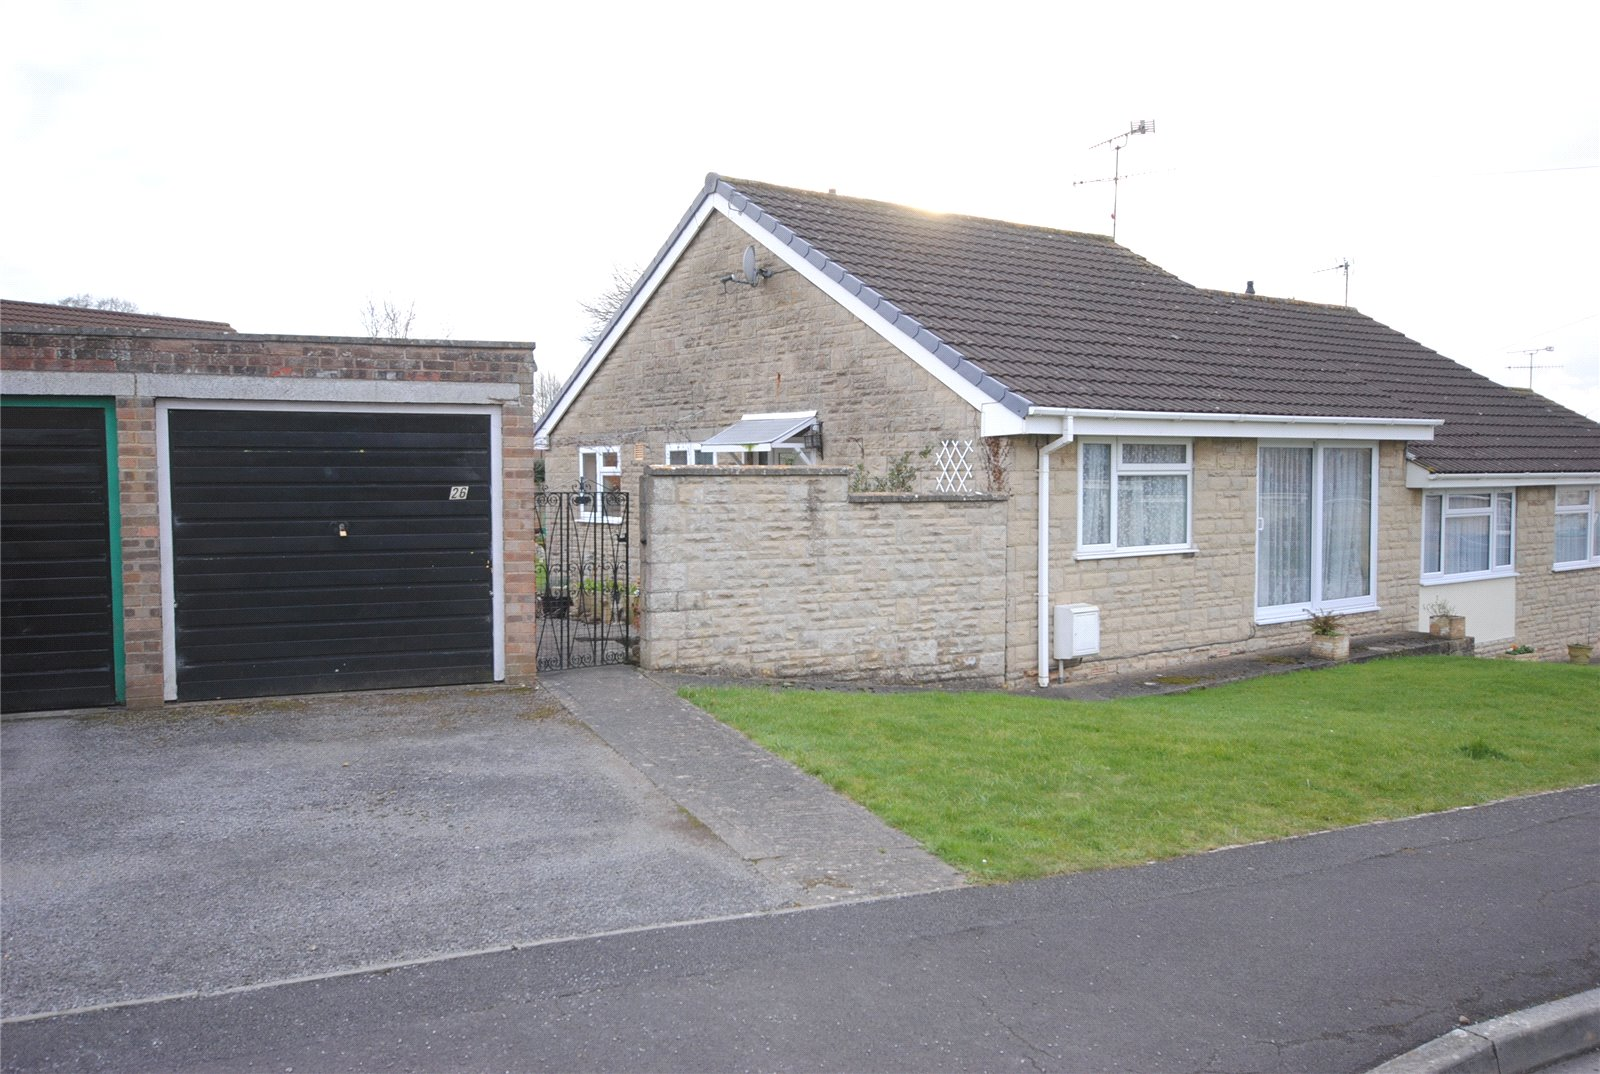 2 Bedrooms Bungalow for sale in Masons Way Cheddar BS27